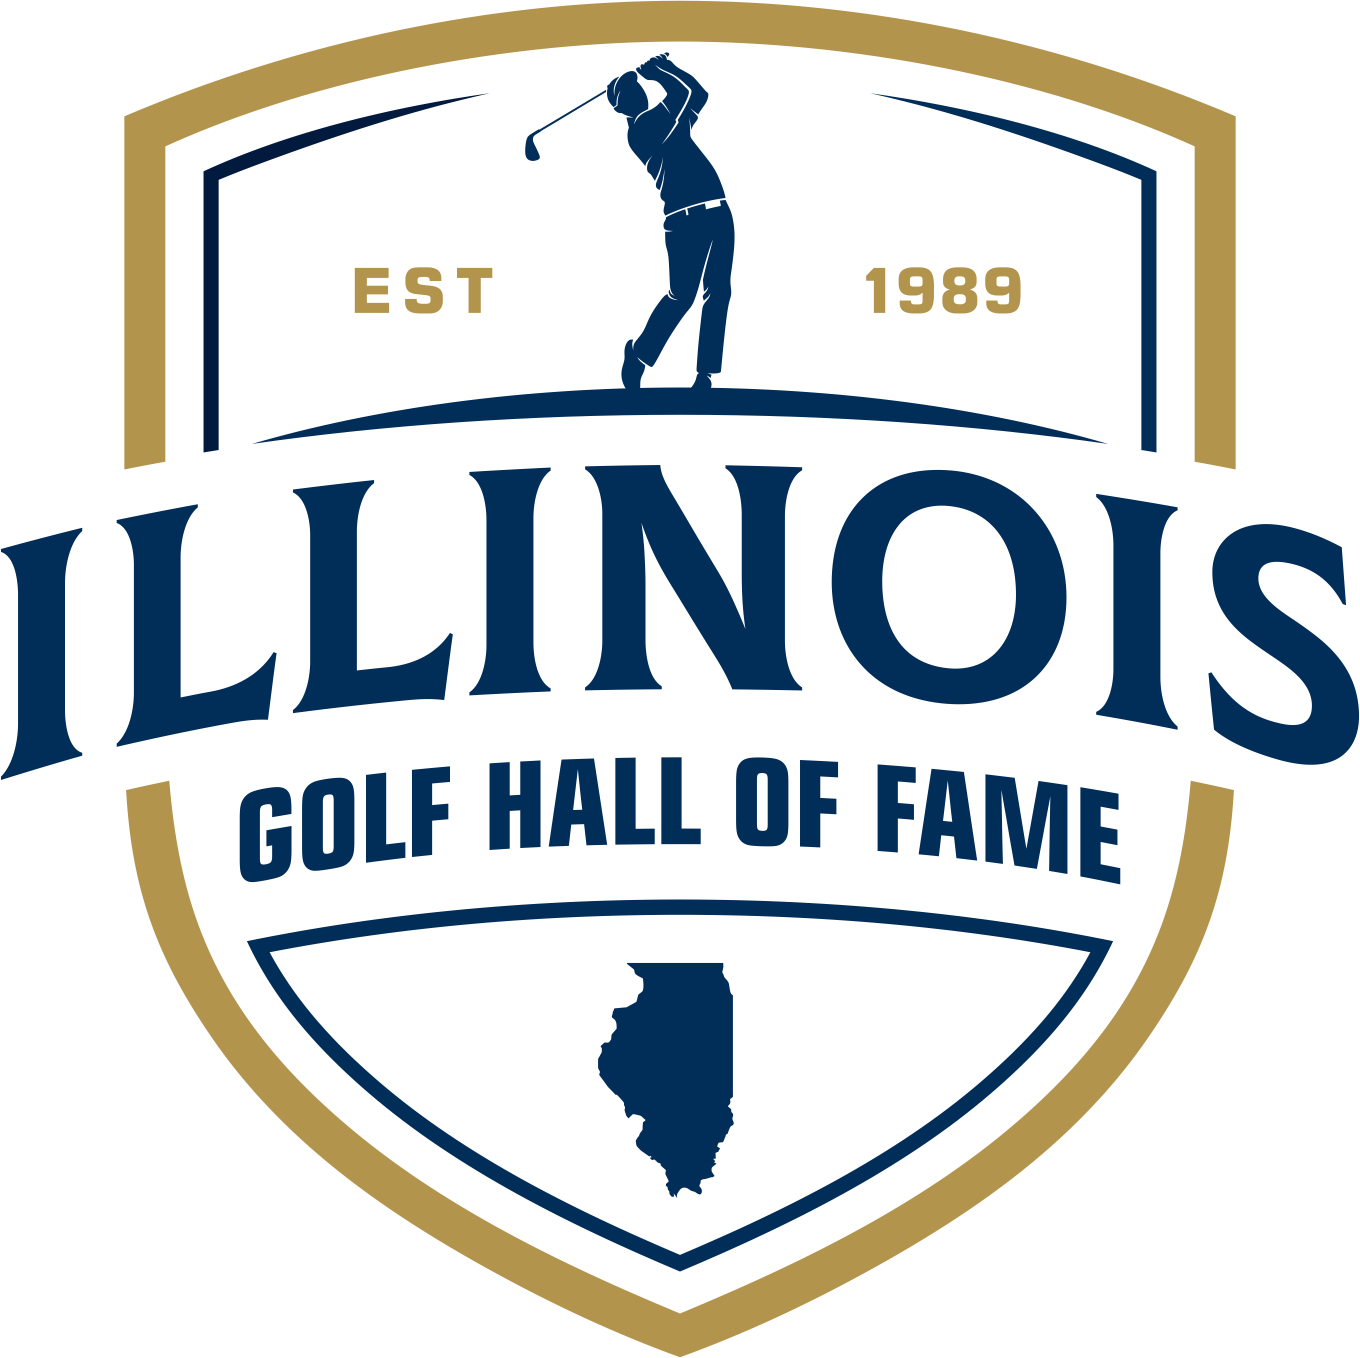 Illinois Golf Hall of Fame